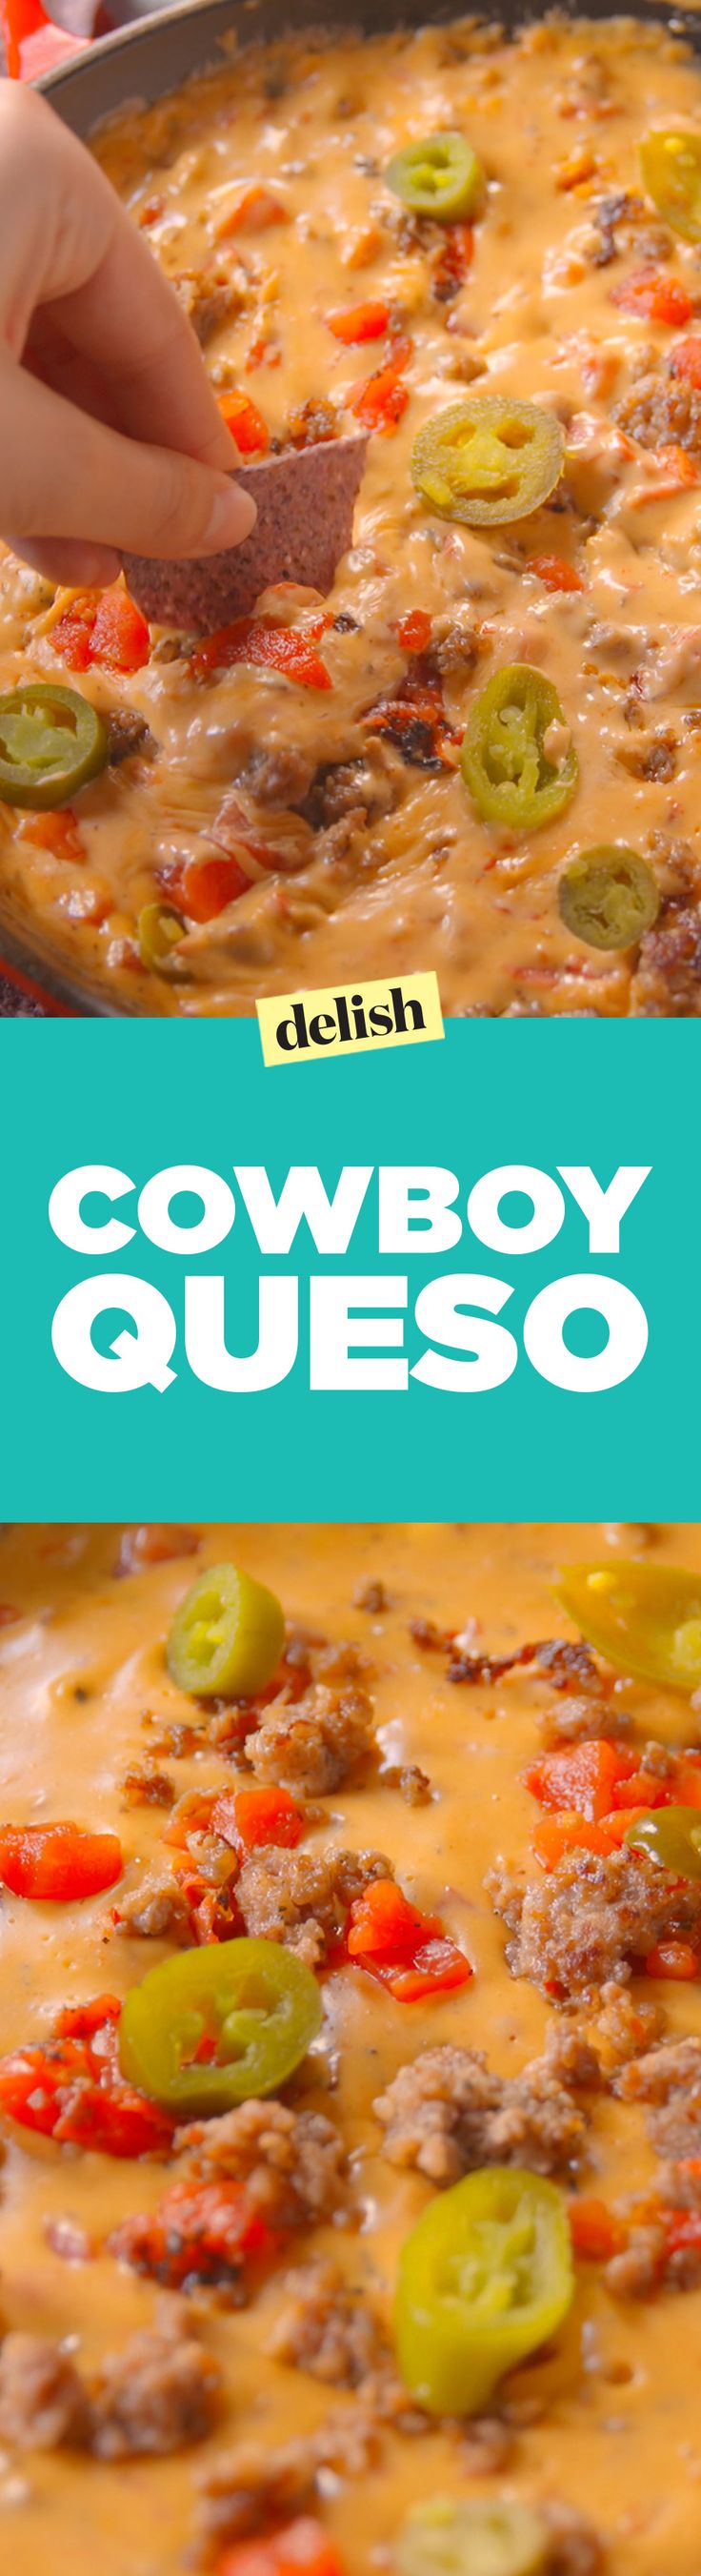 This cowboy queso is the only way you'll want to use a block of Velveeta from now on. Get the recipe on Delish.com.